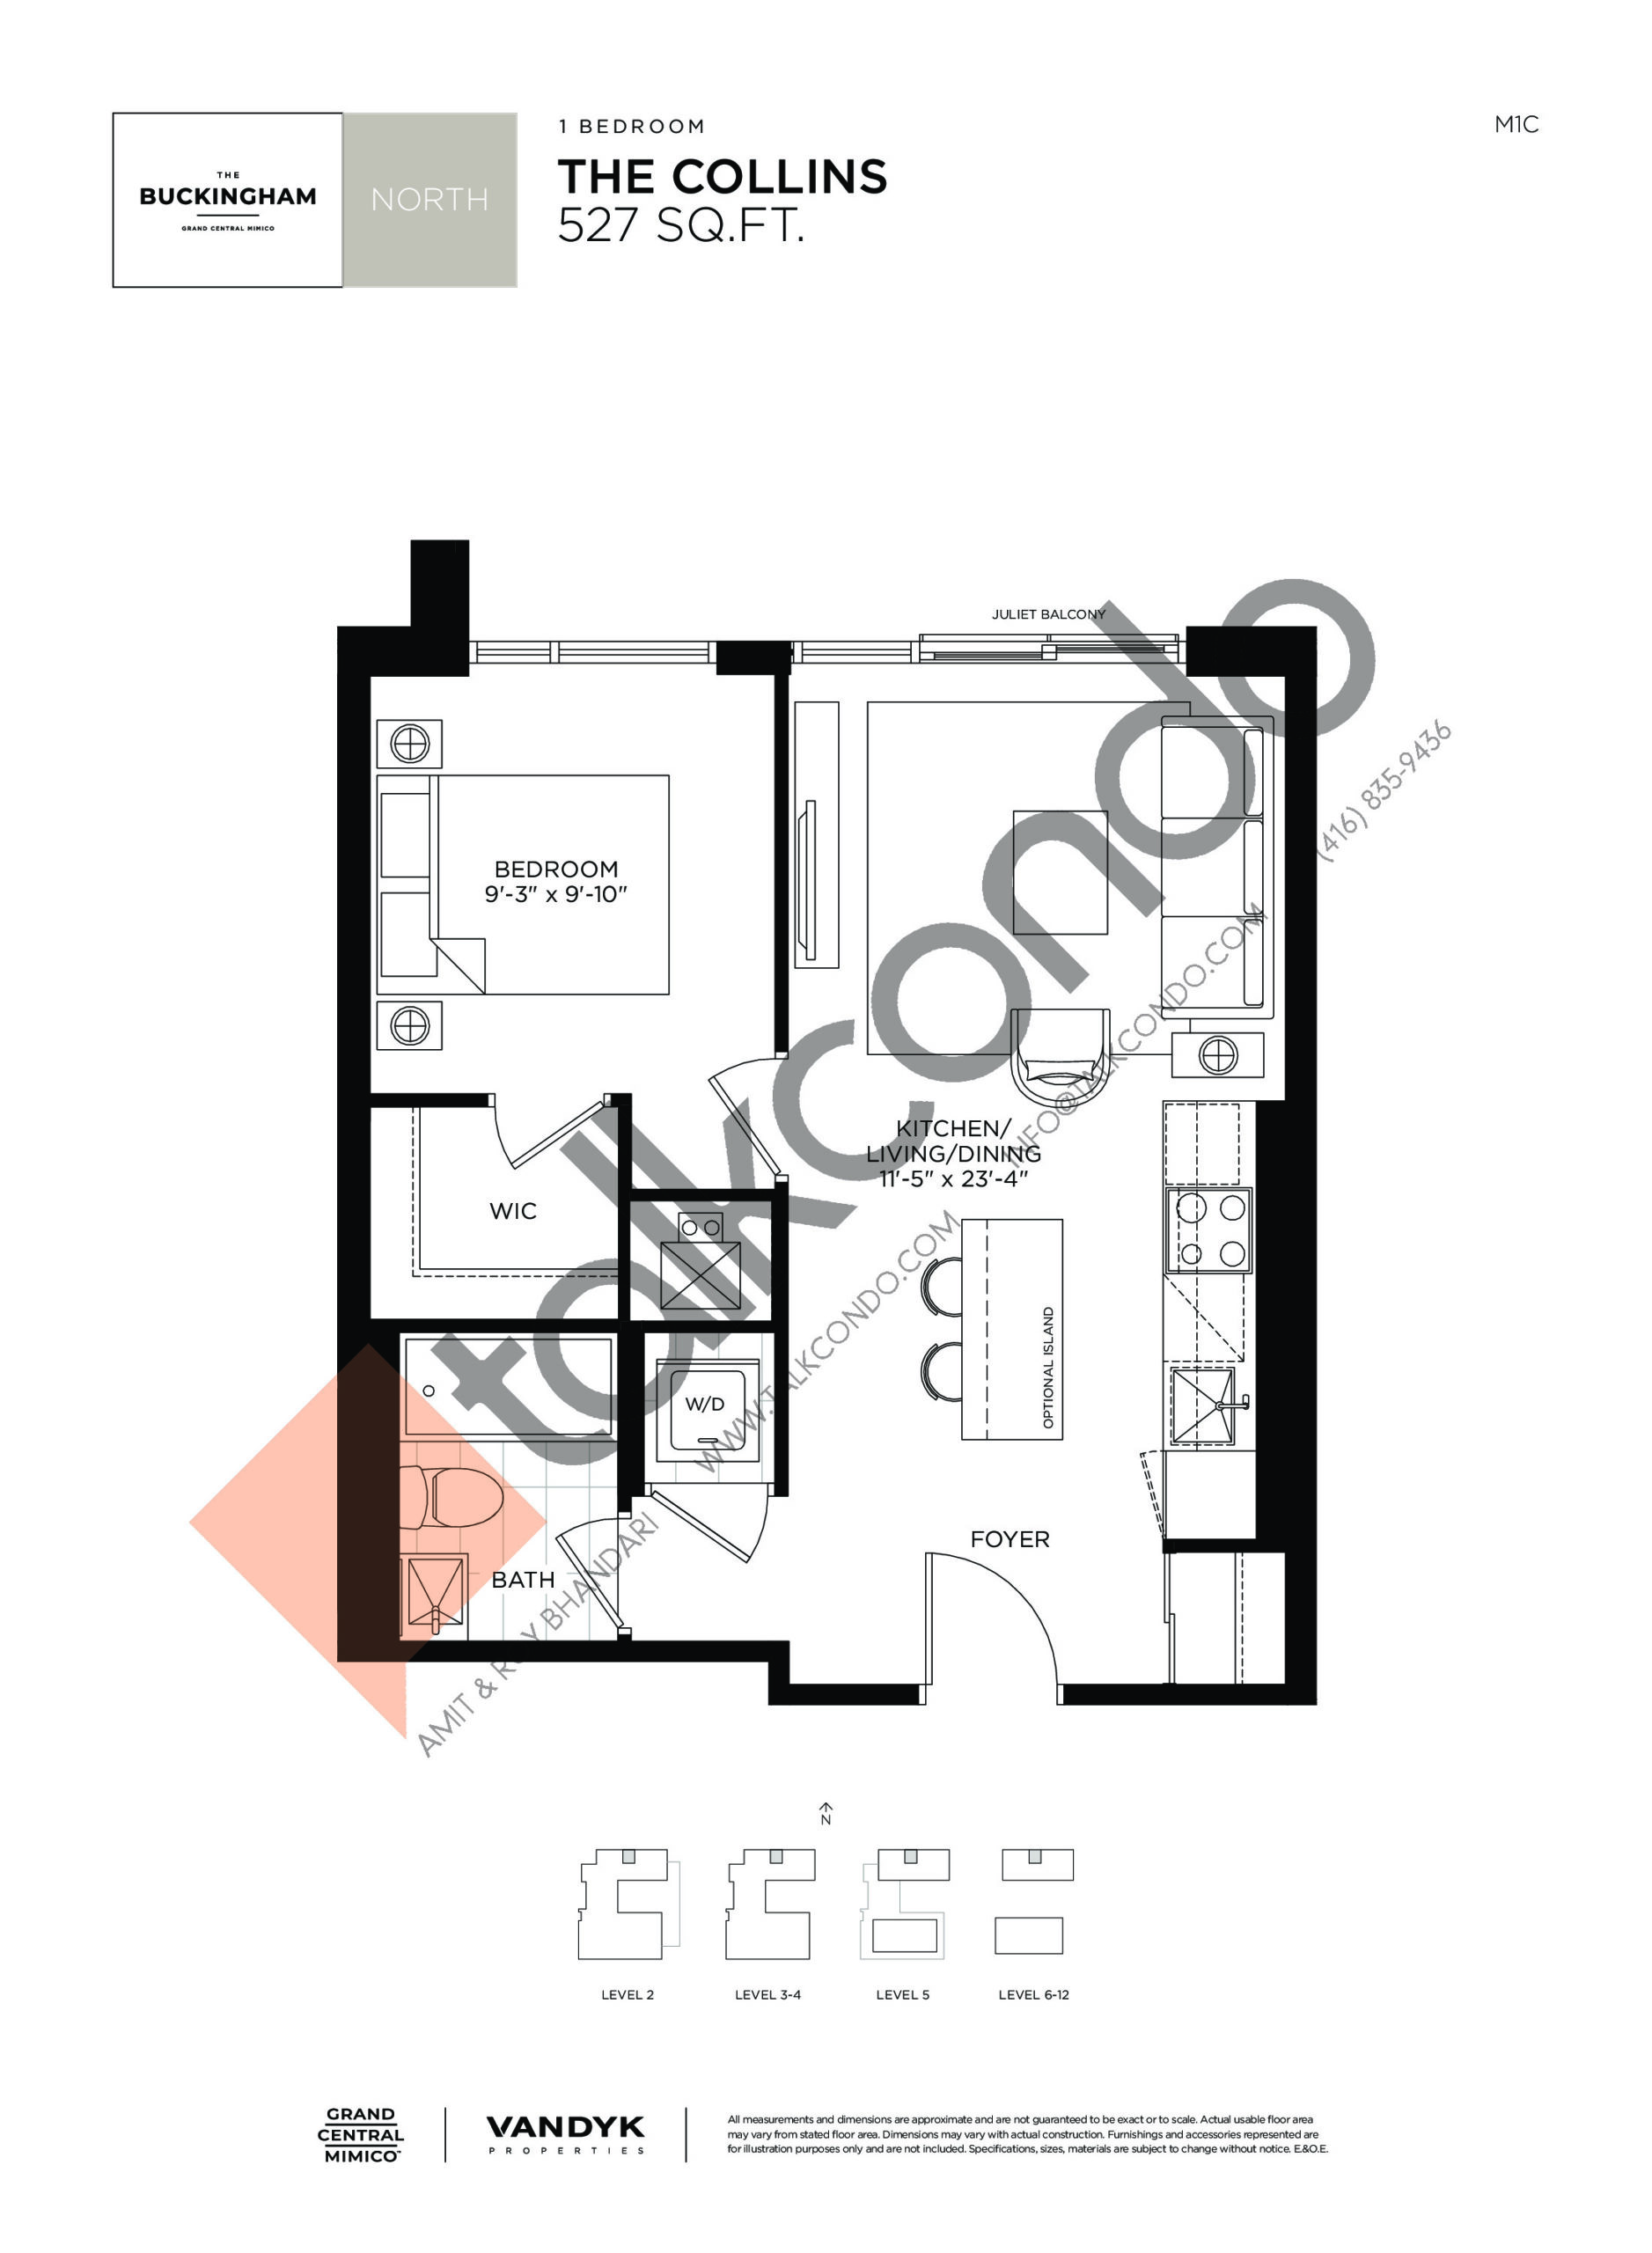 The Collins Floor Plan at Grand Central Mimico Condos - 527 sq.ft